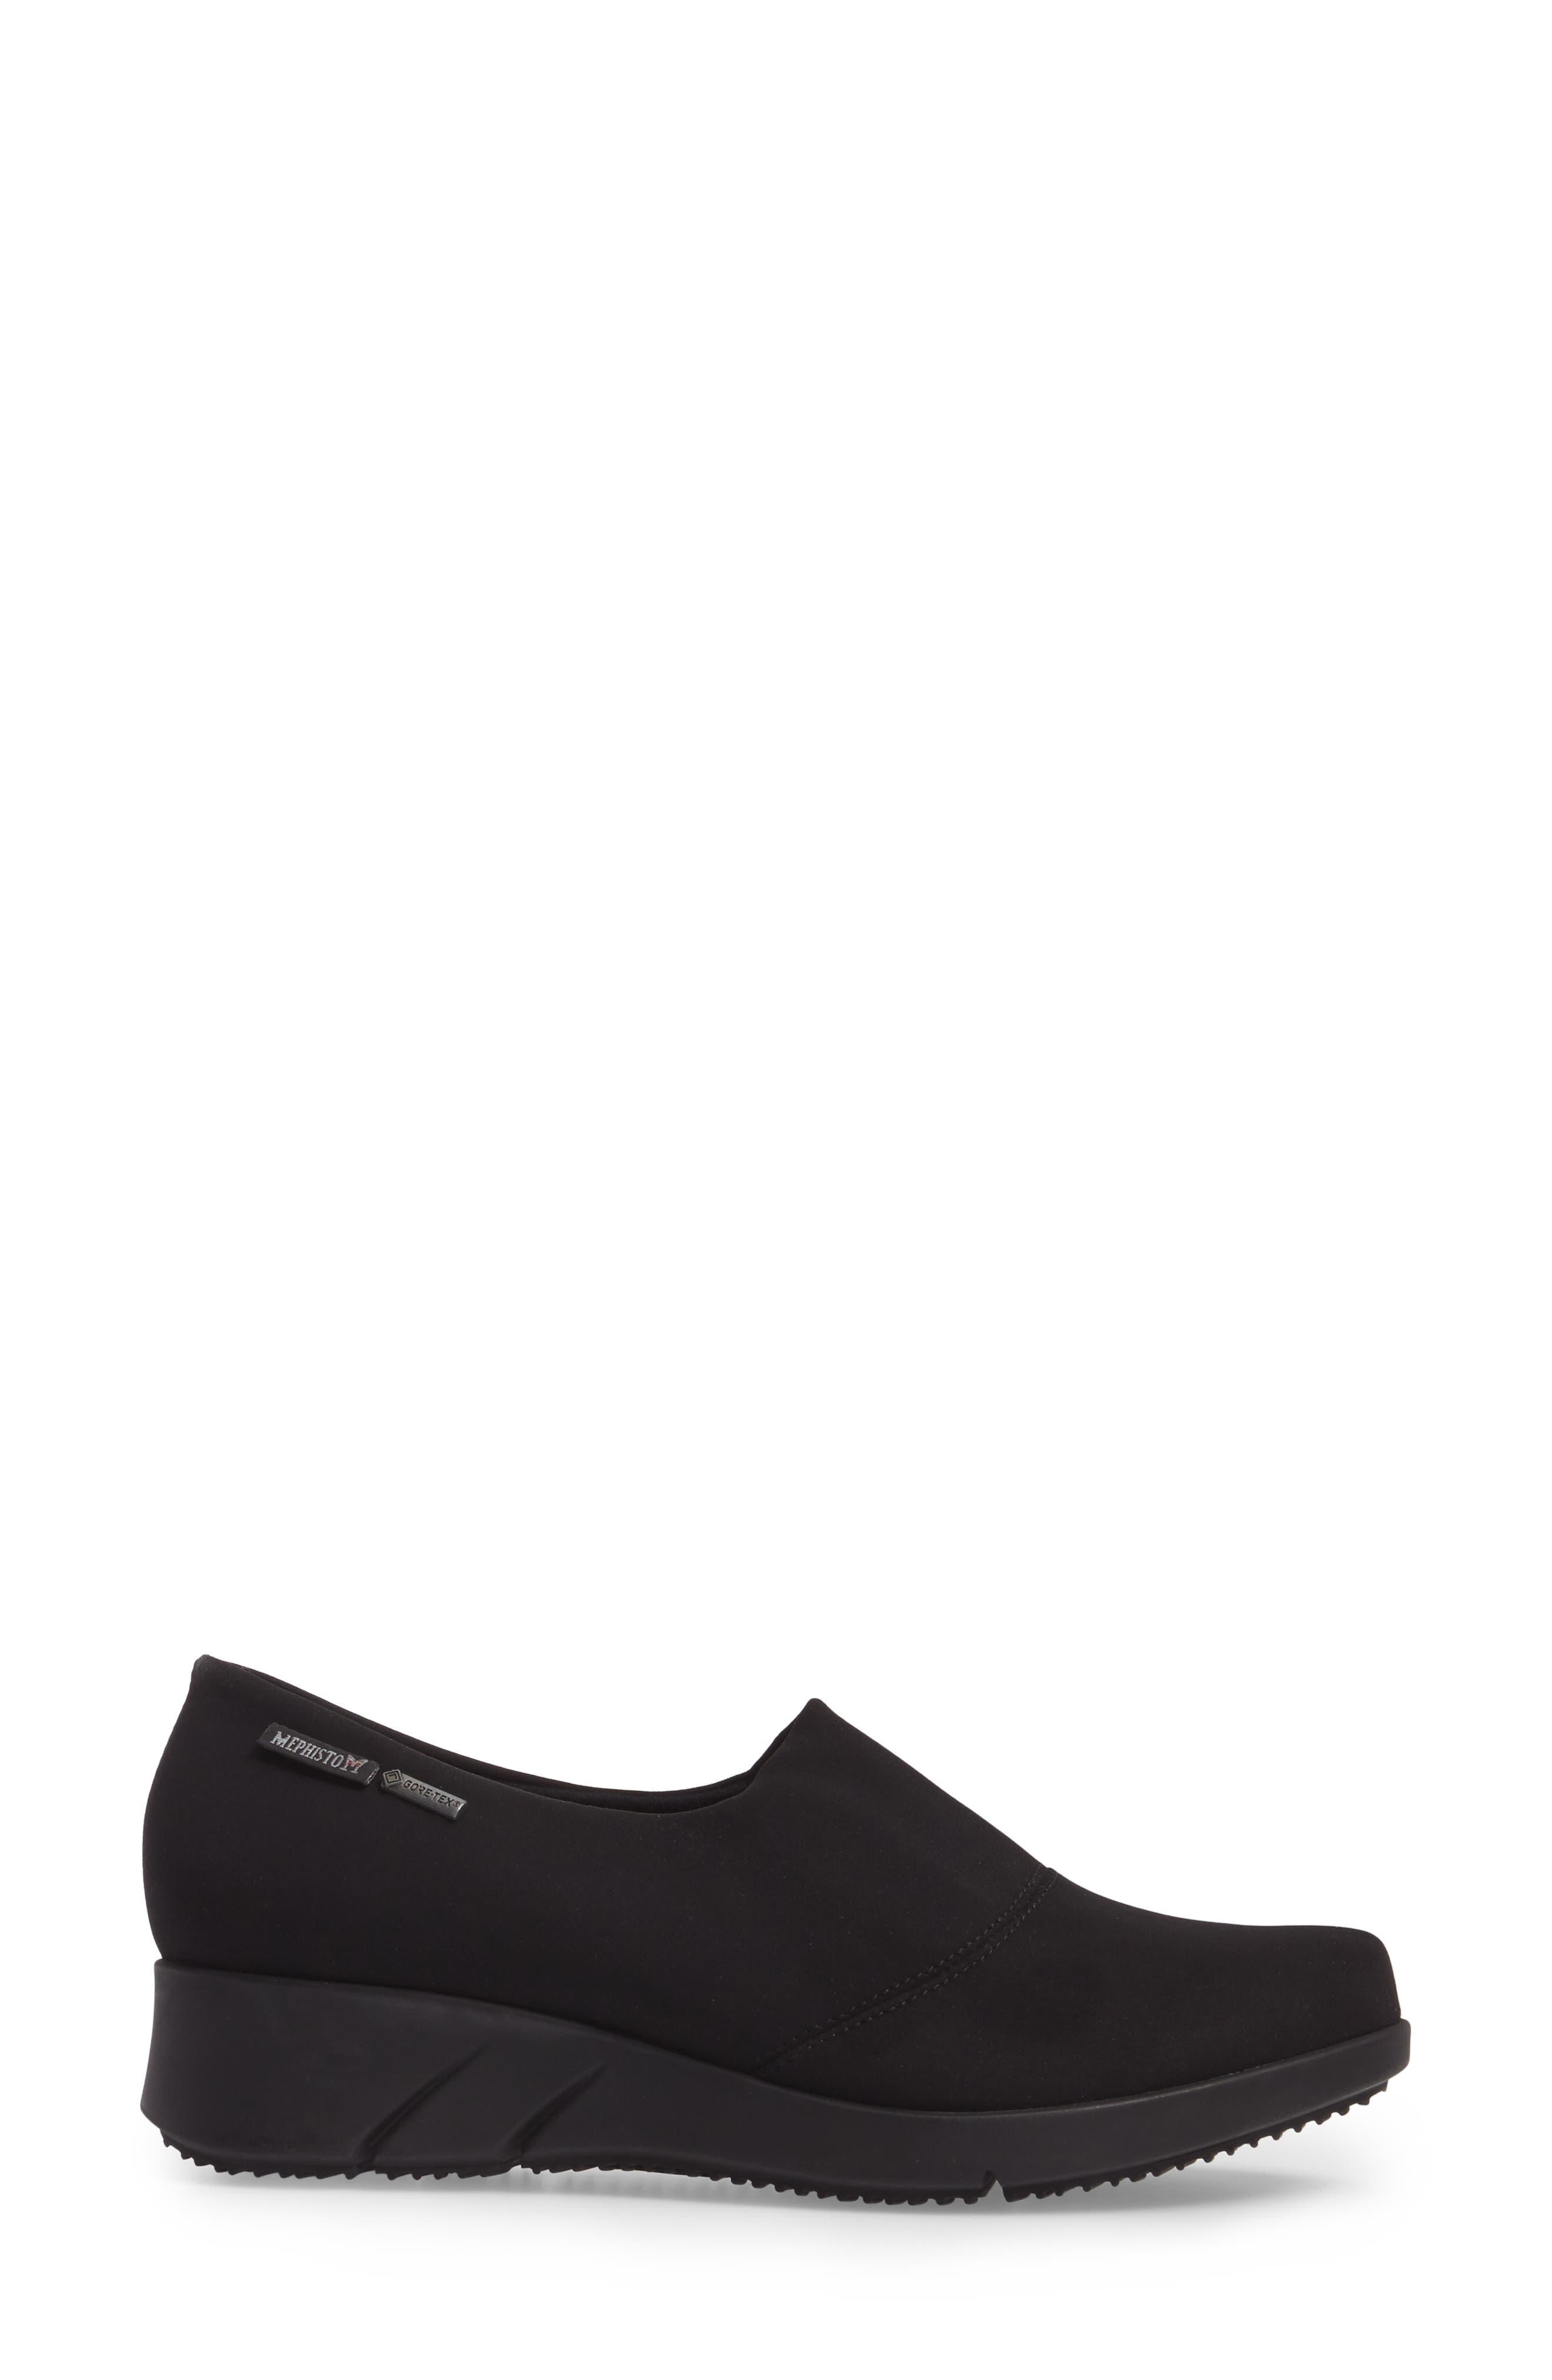 Molly Waterproof Wedge,                             Alternate thumbnail 3, color,                             BLACK FABRIC